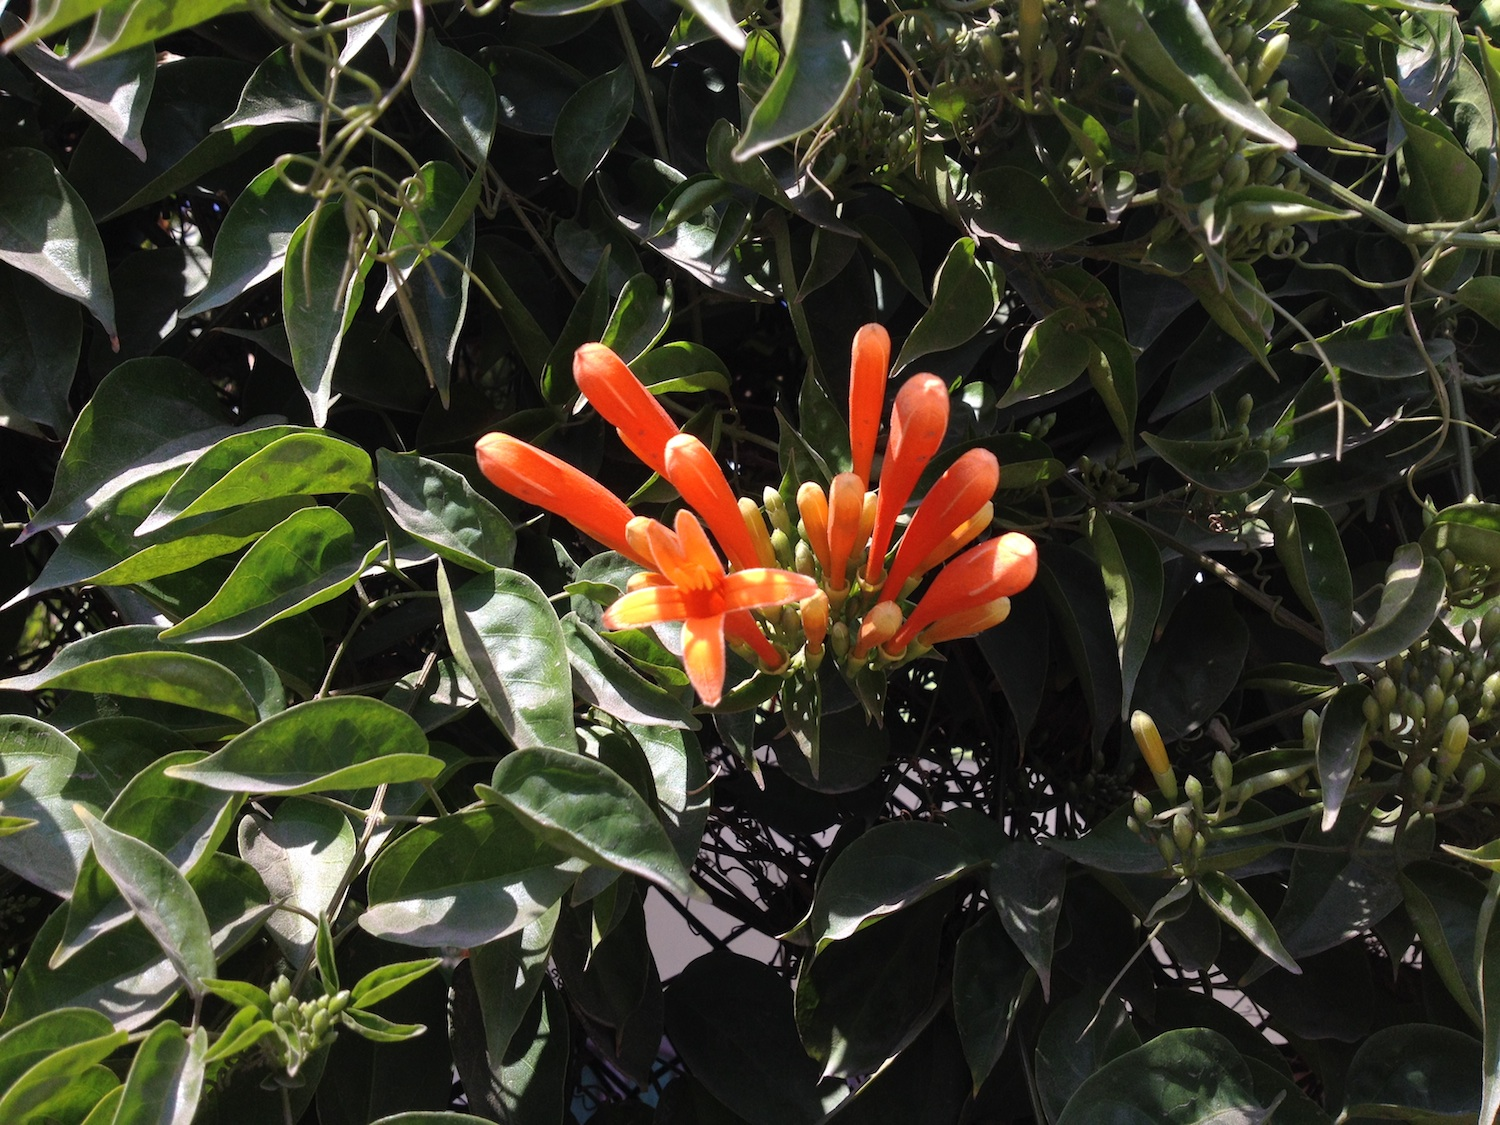 What is this plant with orange flowers like a baseball-bat?